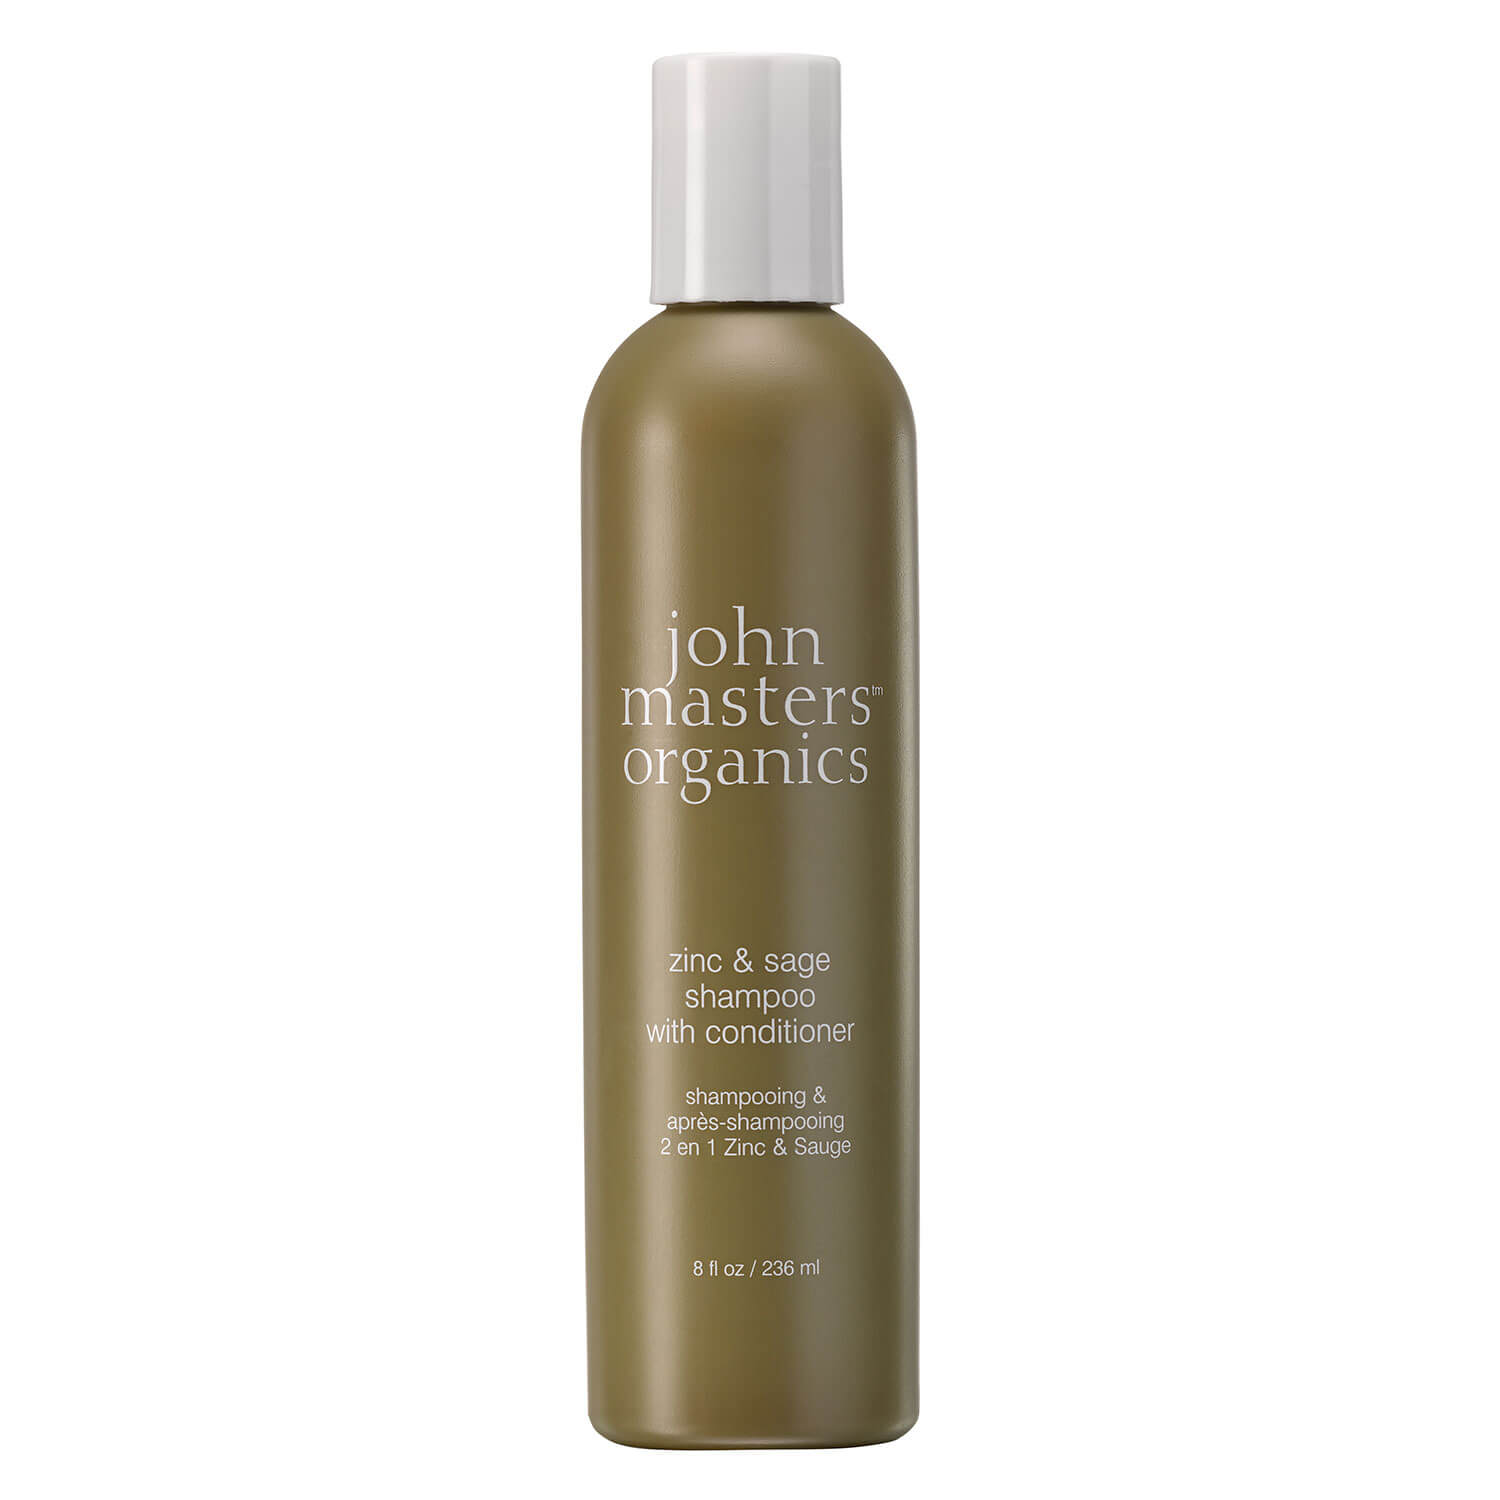 JMO Hair Care - Zinc & Sage Shampoo and Conditioner - 236ml